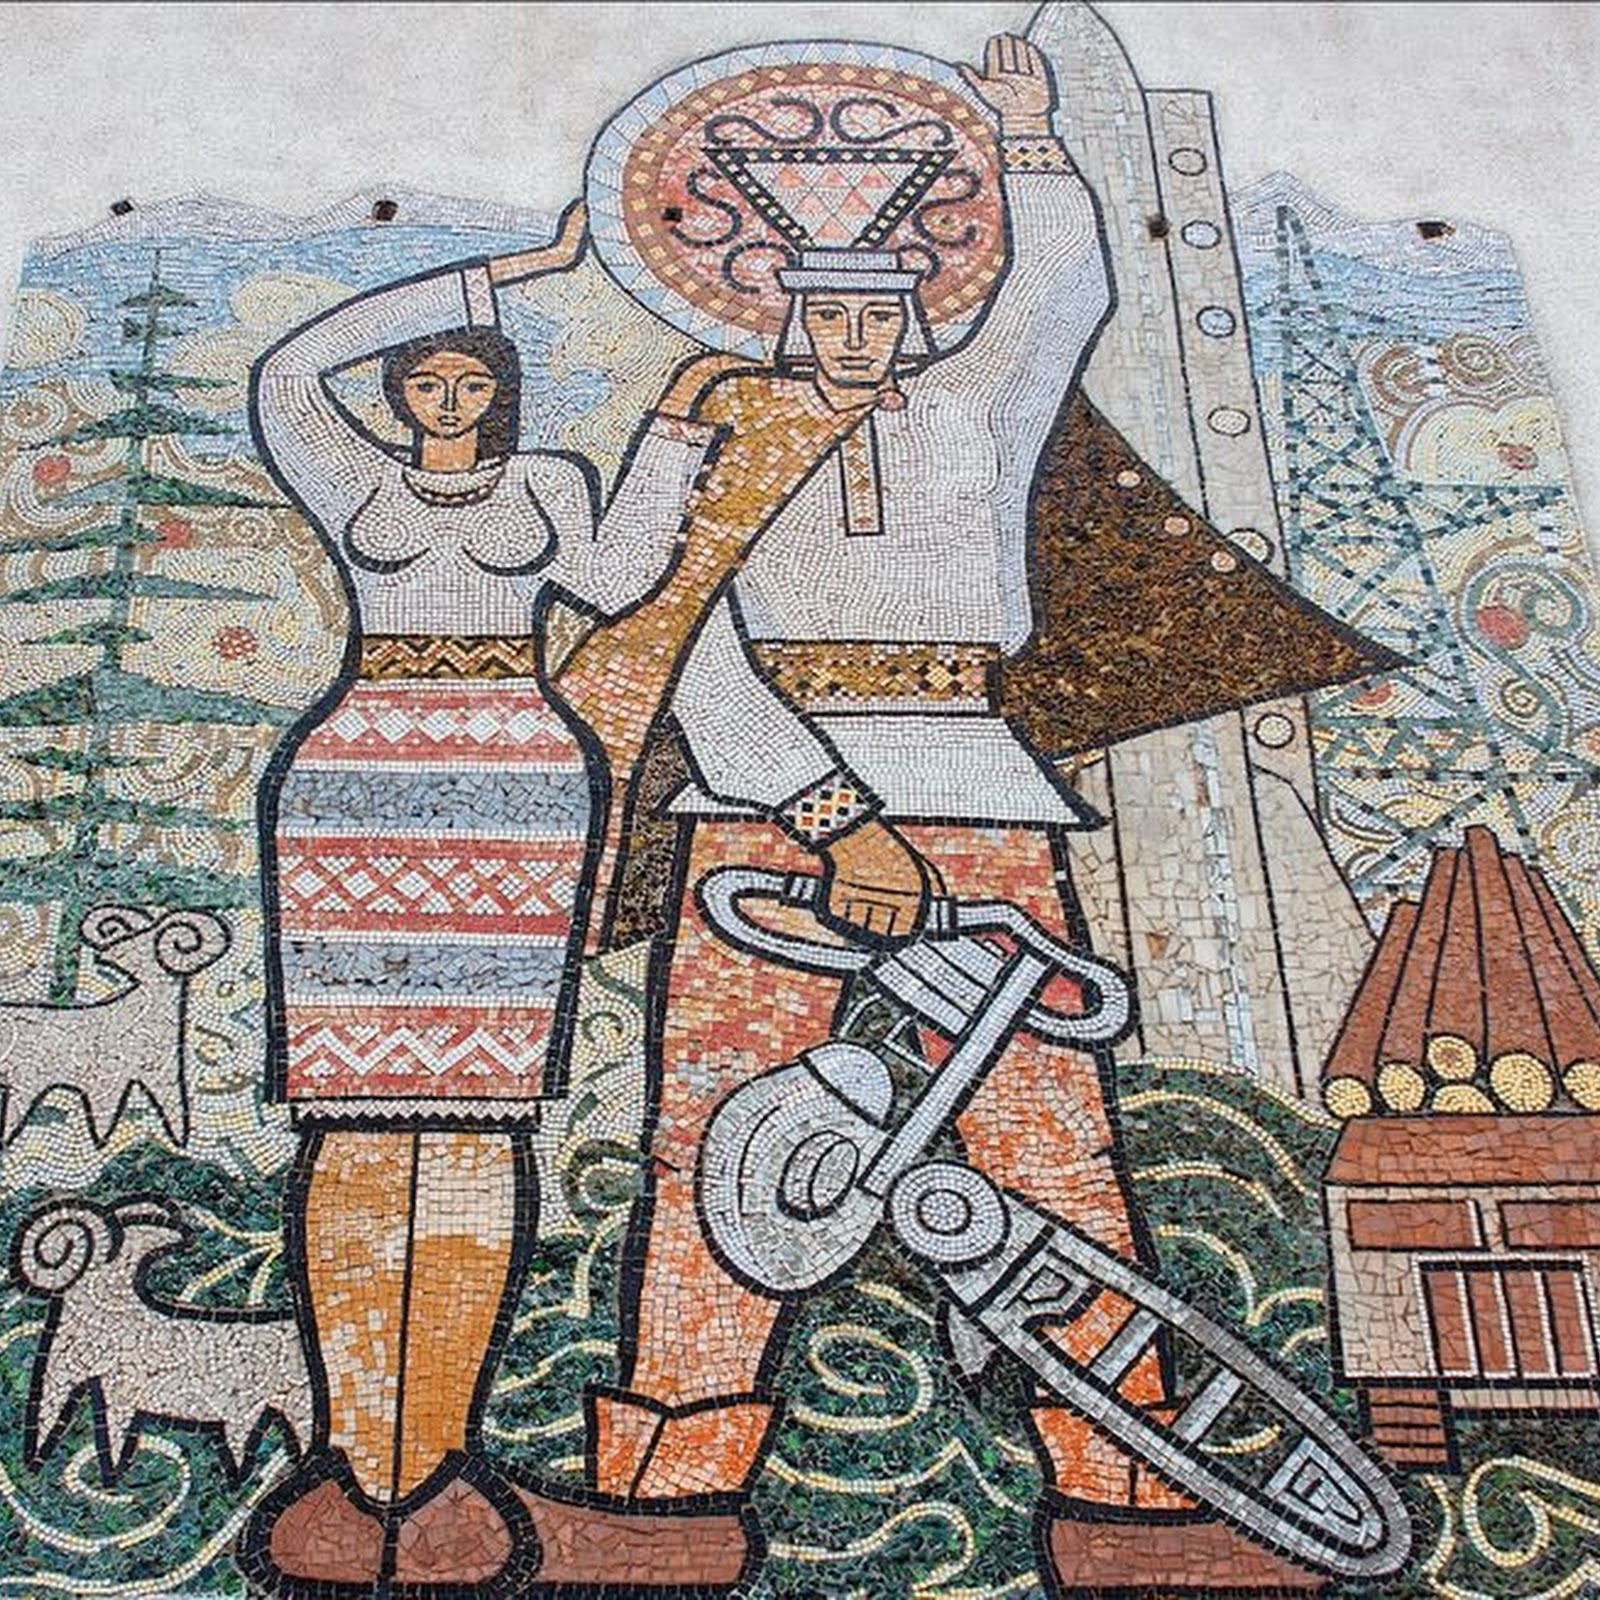 The Forgotten Soviet-Era Murals